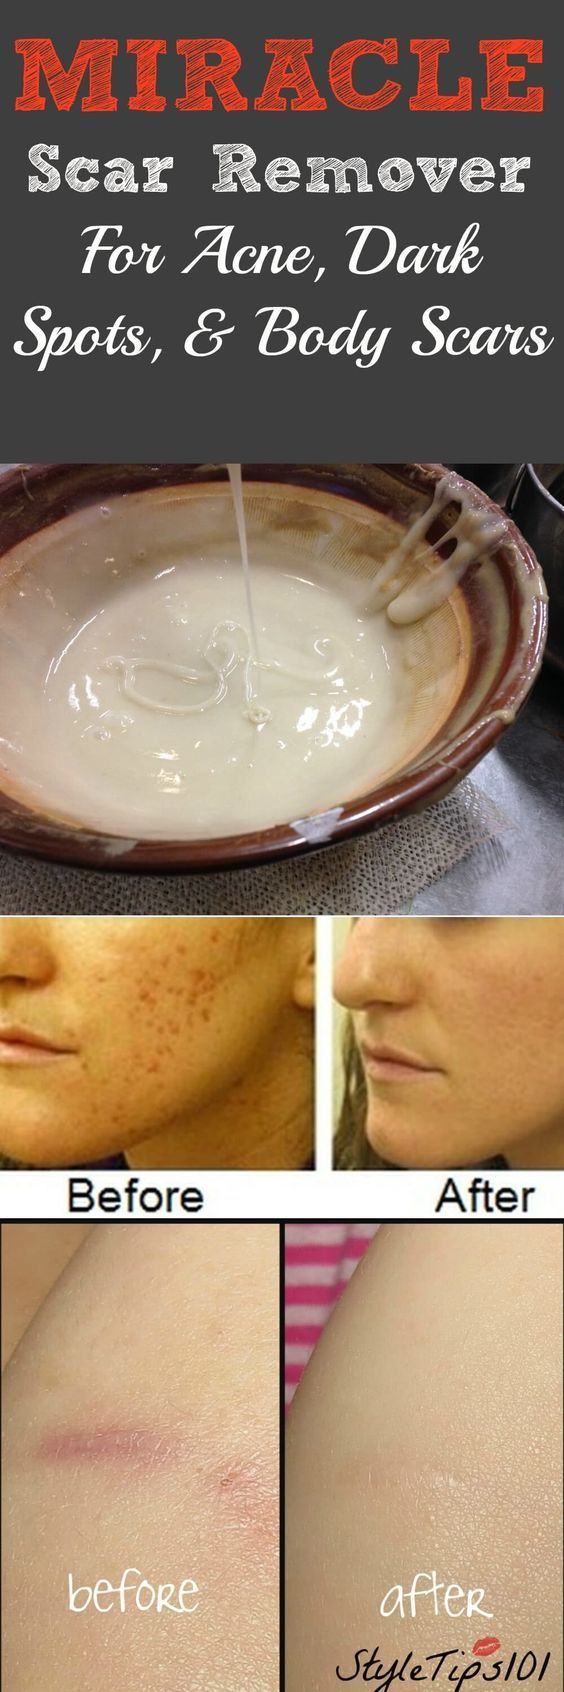 74 best spells and potions to take care of your skin images on 74 best spells and potions to take care of your skin images on pinterest beauty secrets make up and makeup ccuart Gallery